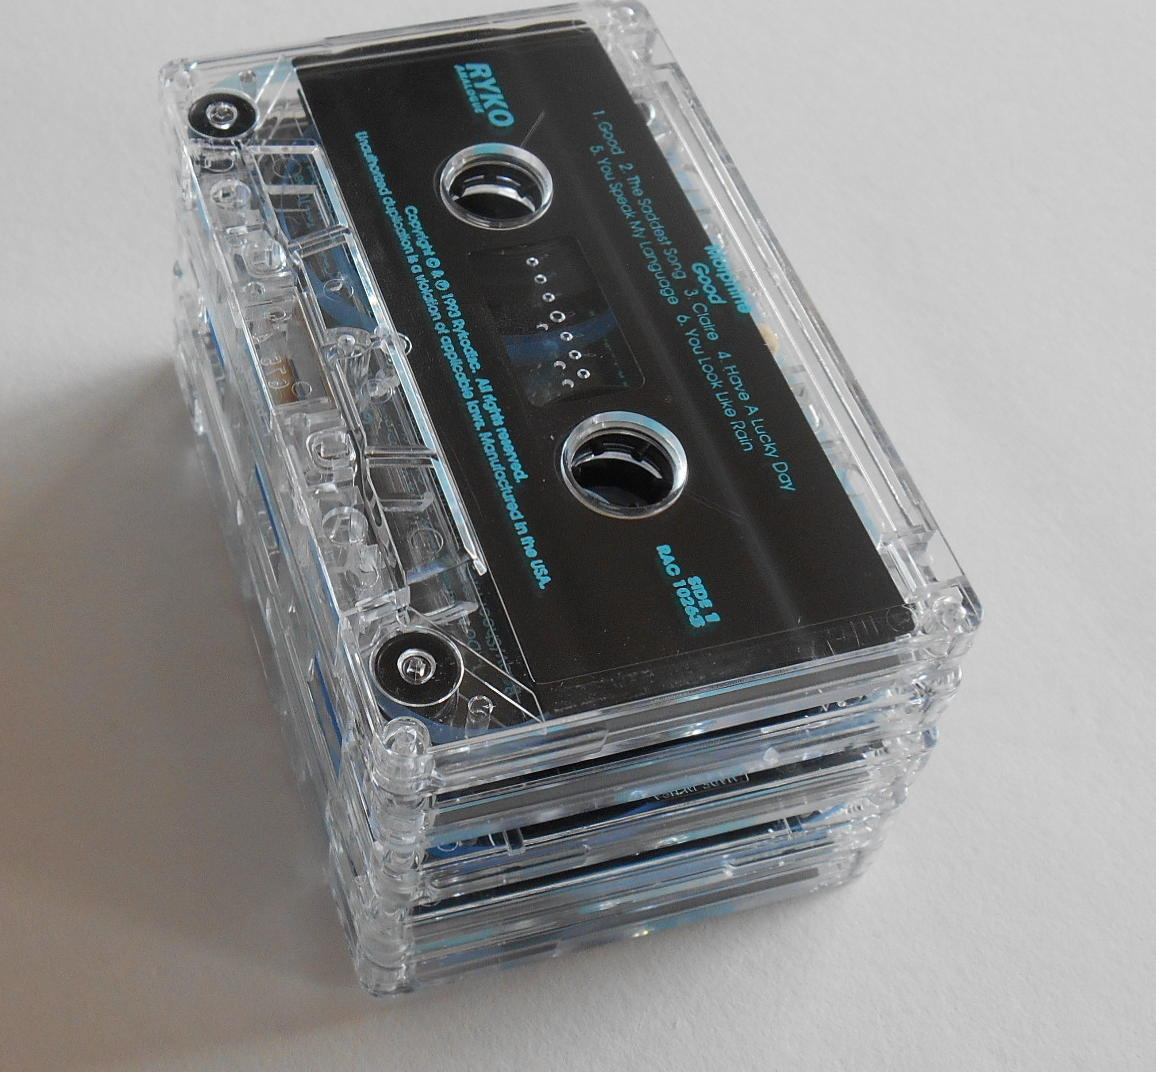 25 Clear Cassette Tapes For Craft And Reuse Art Projects